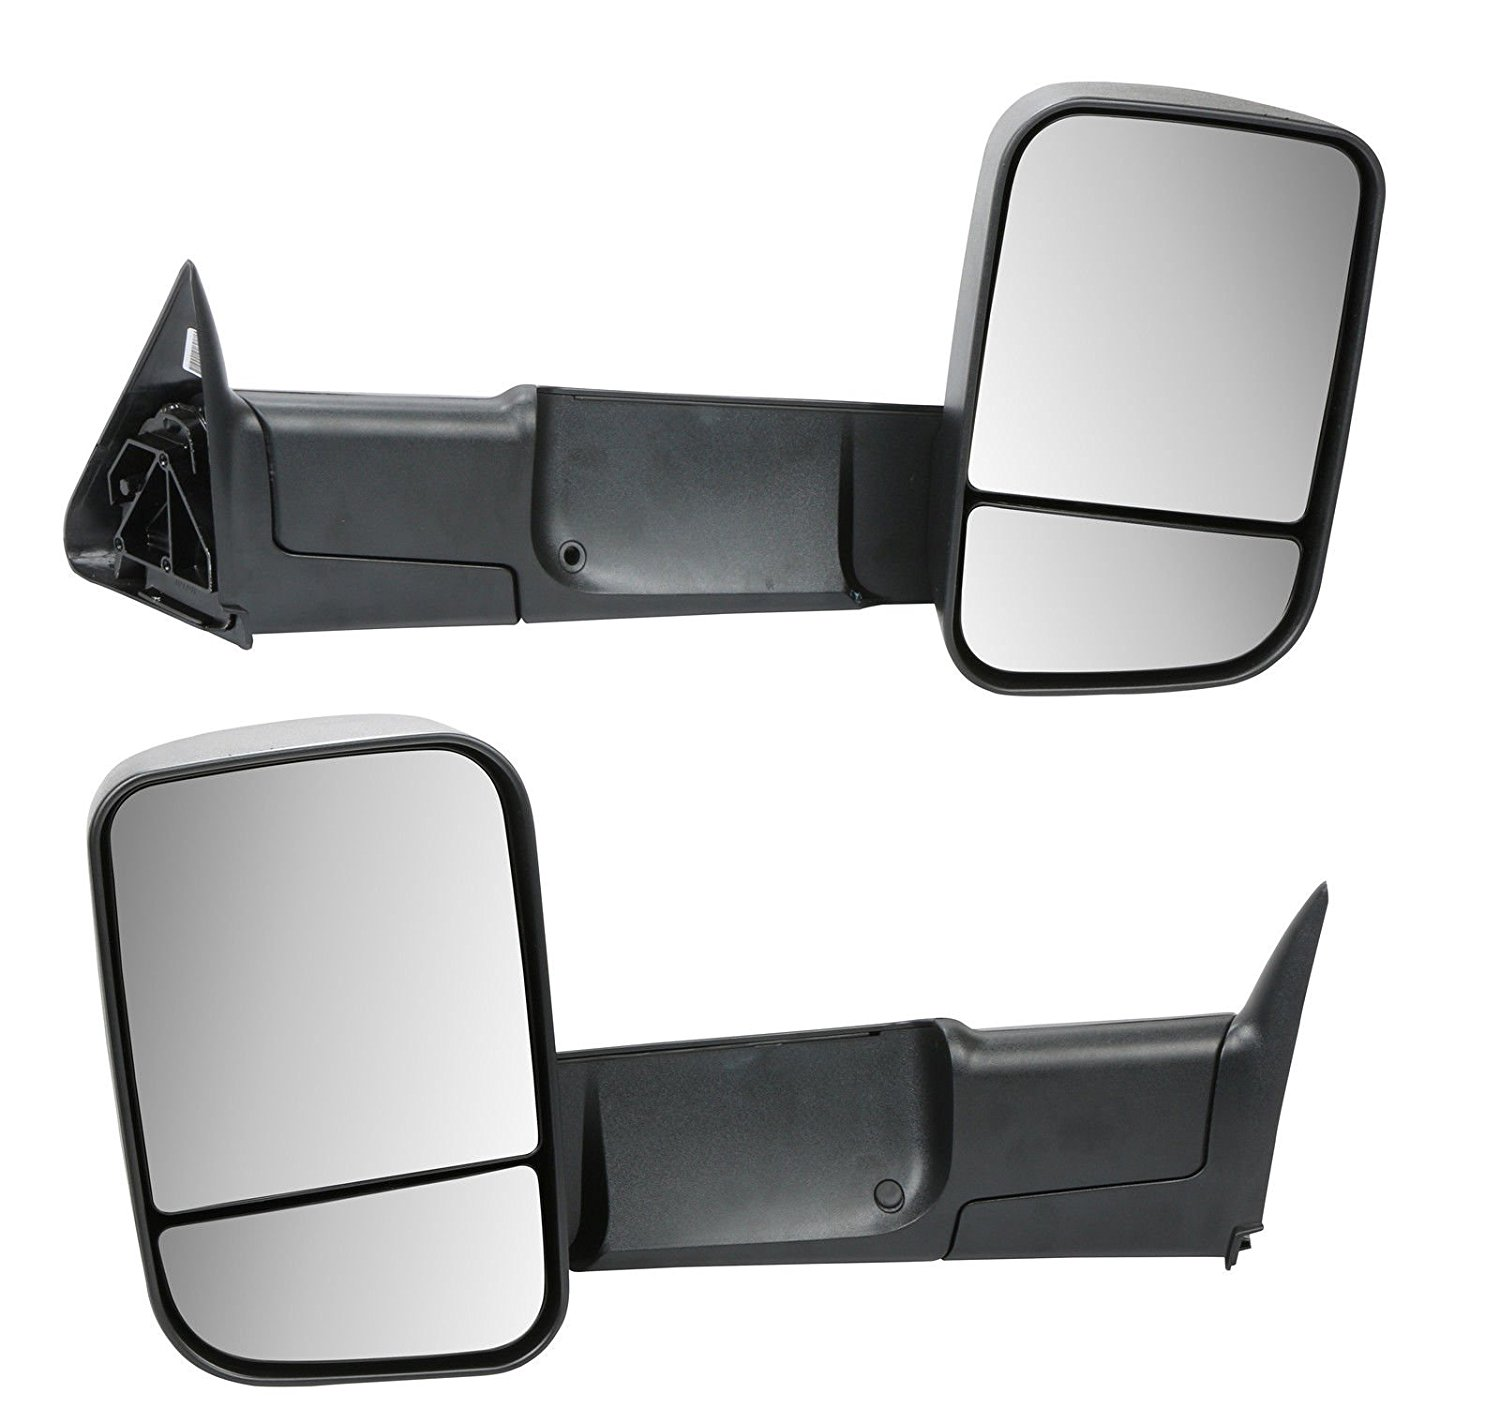 MOSTPLUS M91101 Towing Mirrors for Dodge Ram 1500 2500 3500 LH & RH Manual Flip Up Set